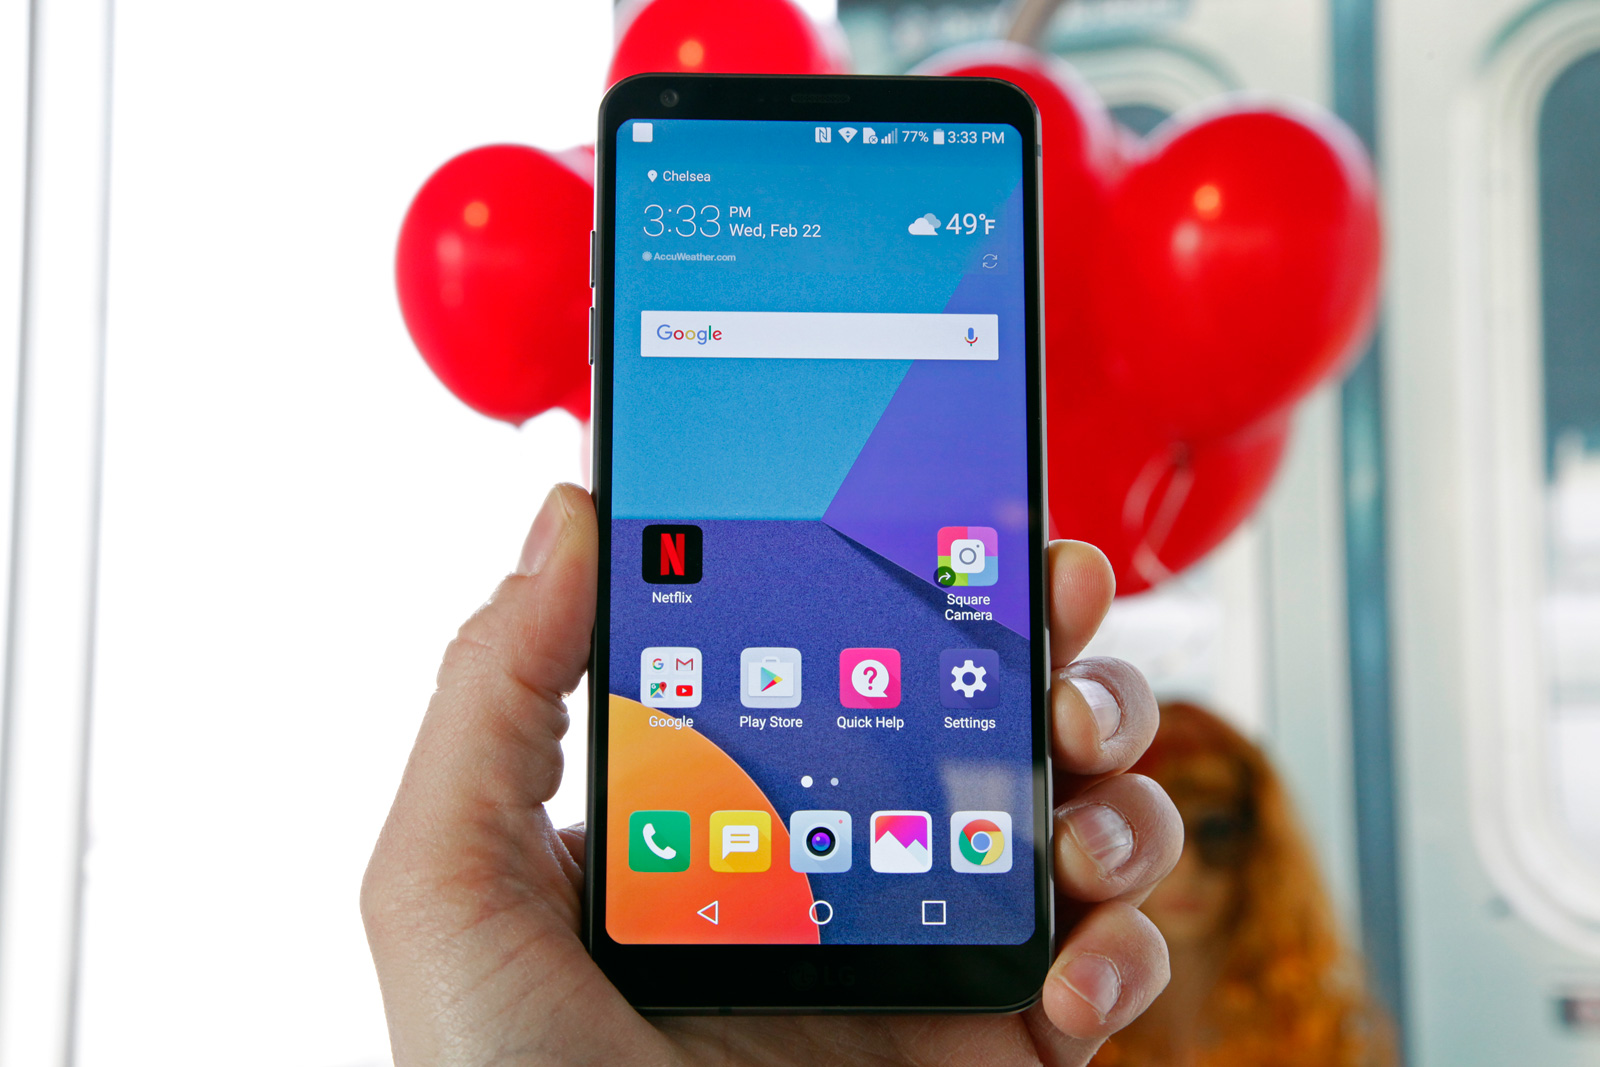 LG G6 Hands On